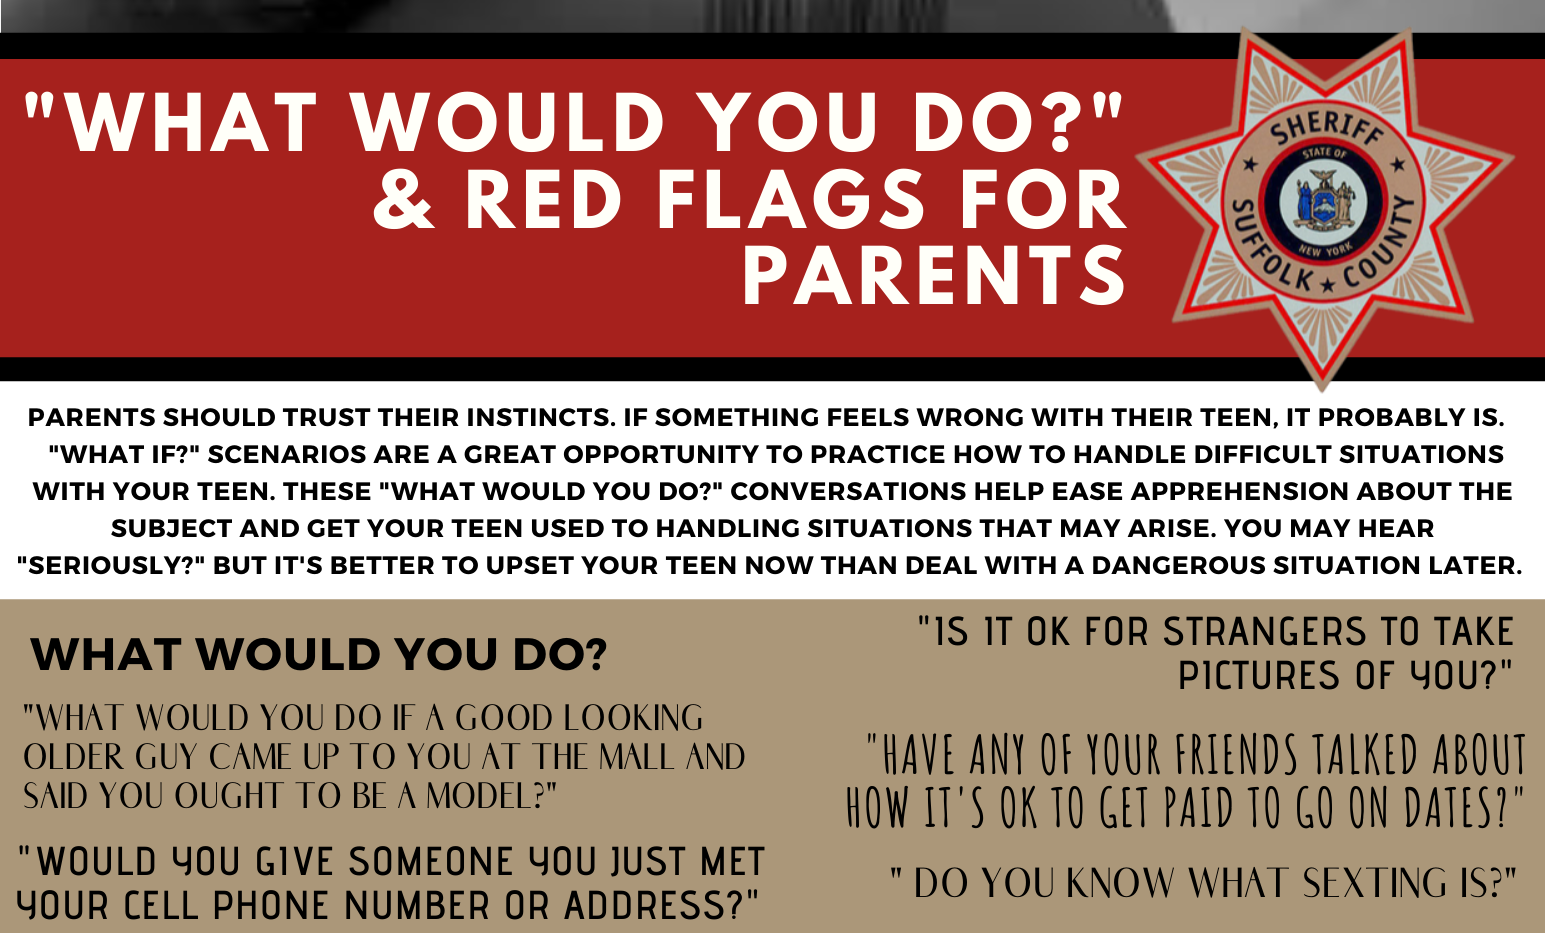 Red Flags for Parents